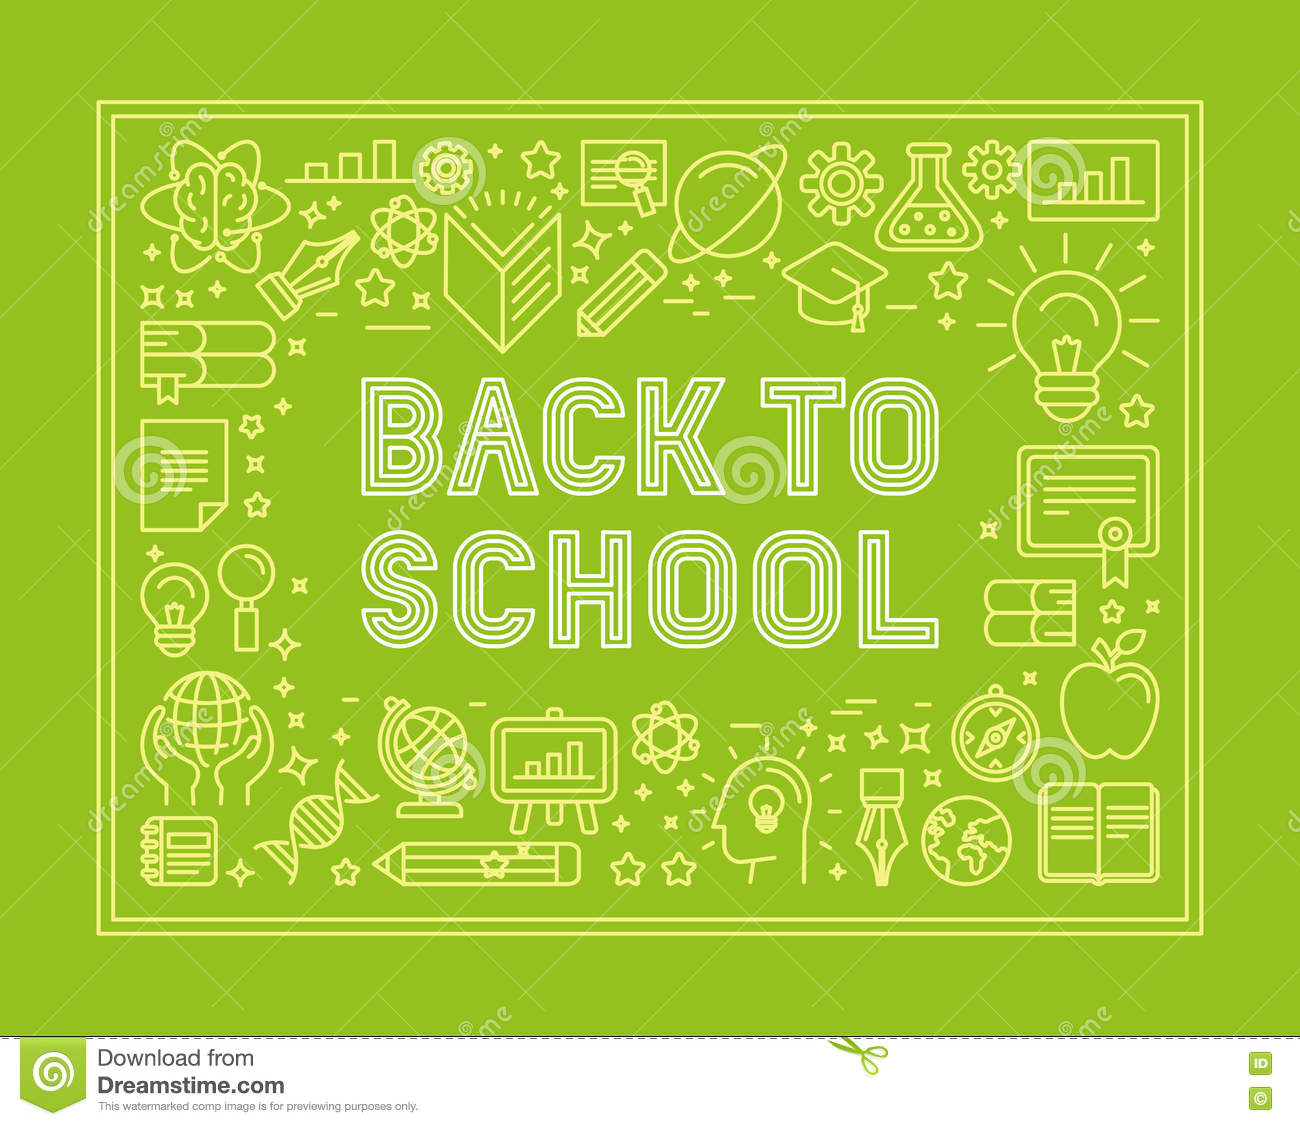 Trendy Poster Designs: Vector Back To School Poster Design In Trendy Linear Style